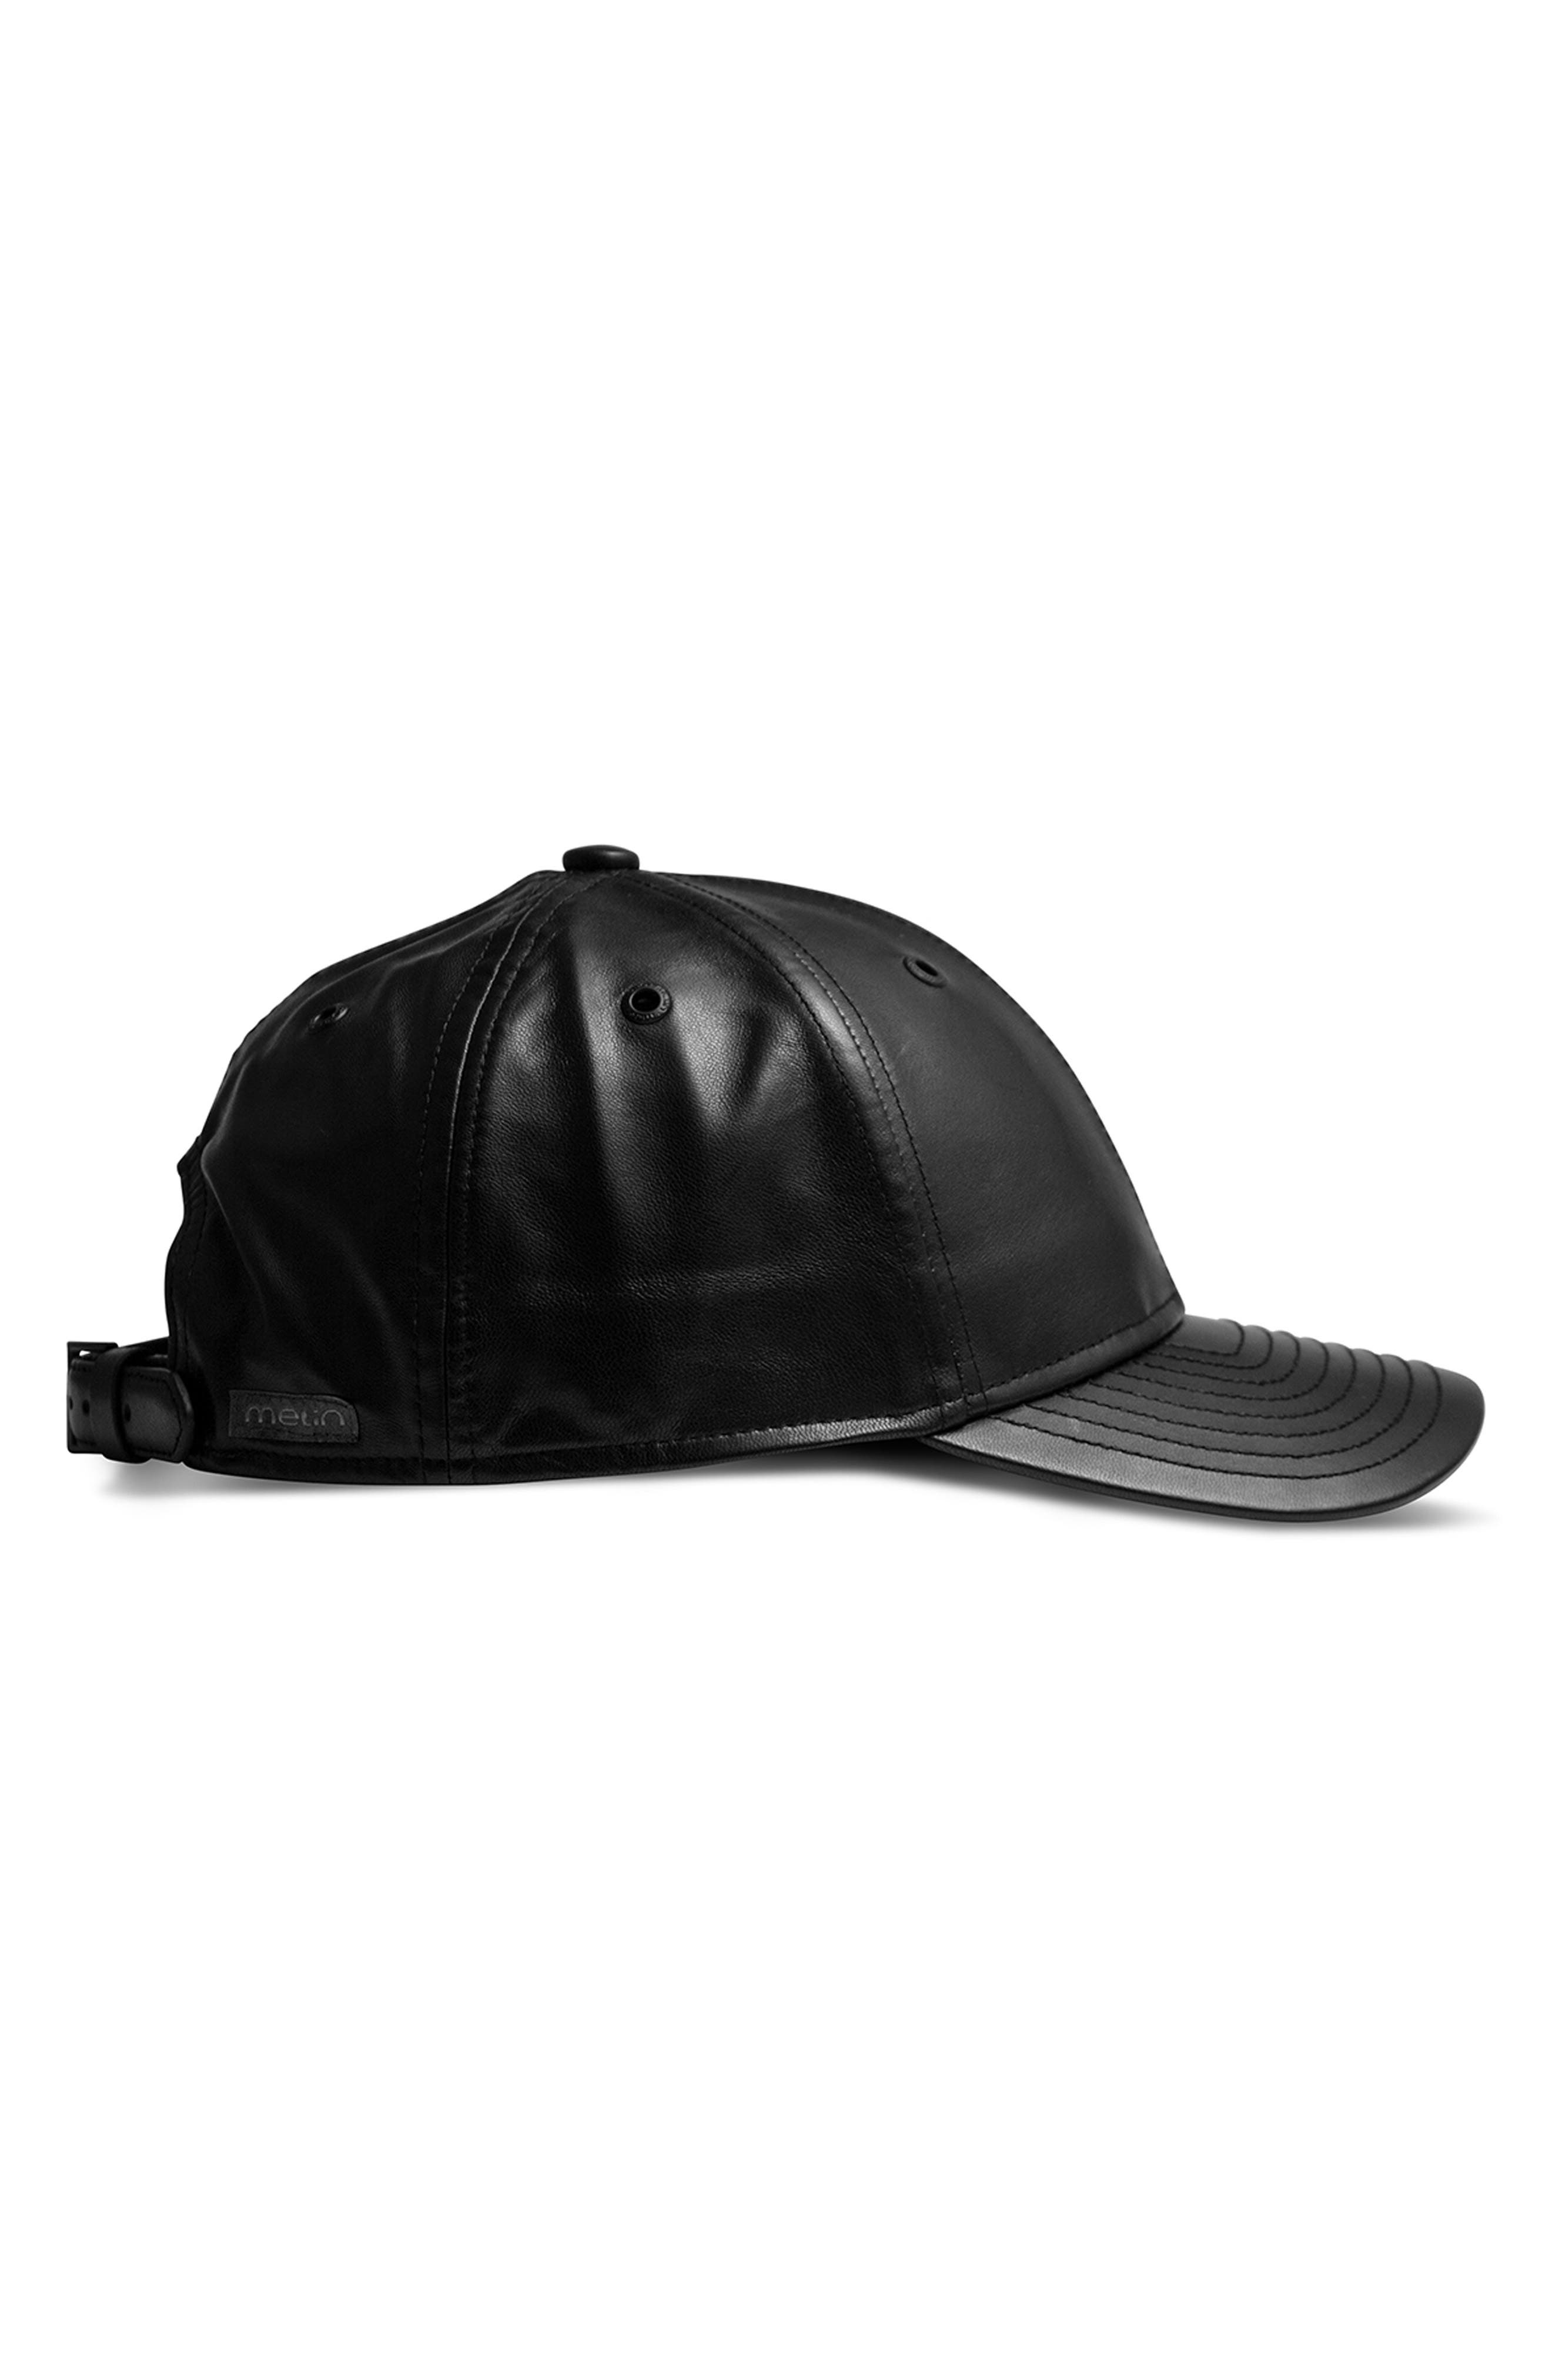 Voyage Elite Leather Ball Cap,                             Alternate thumbnail 7, color,                             BLACK